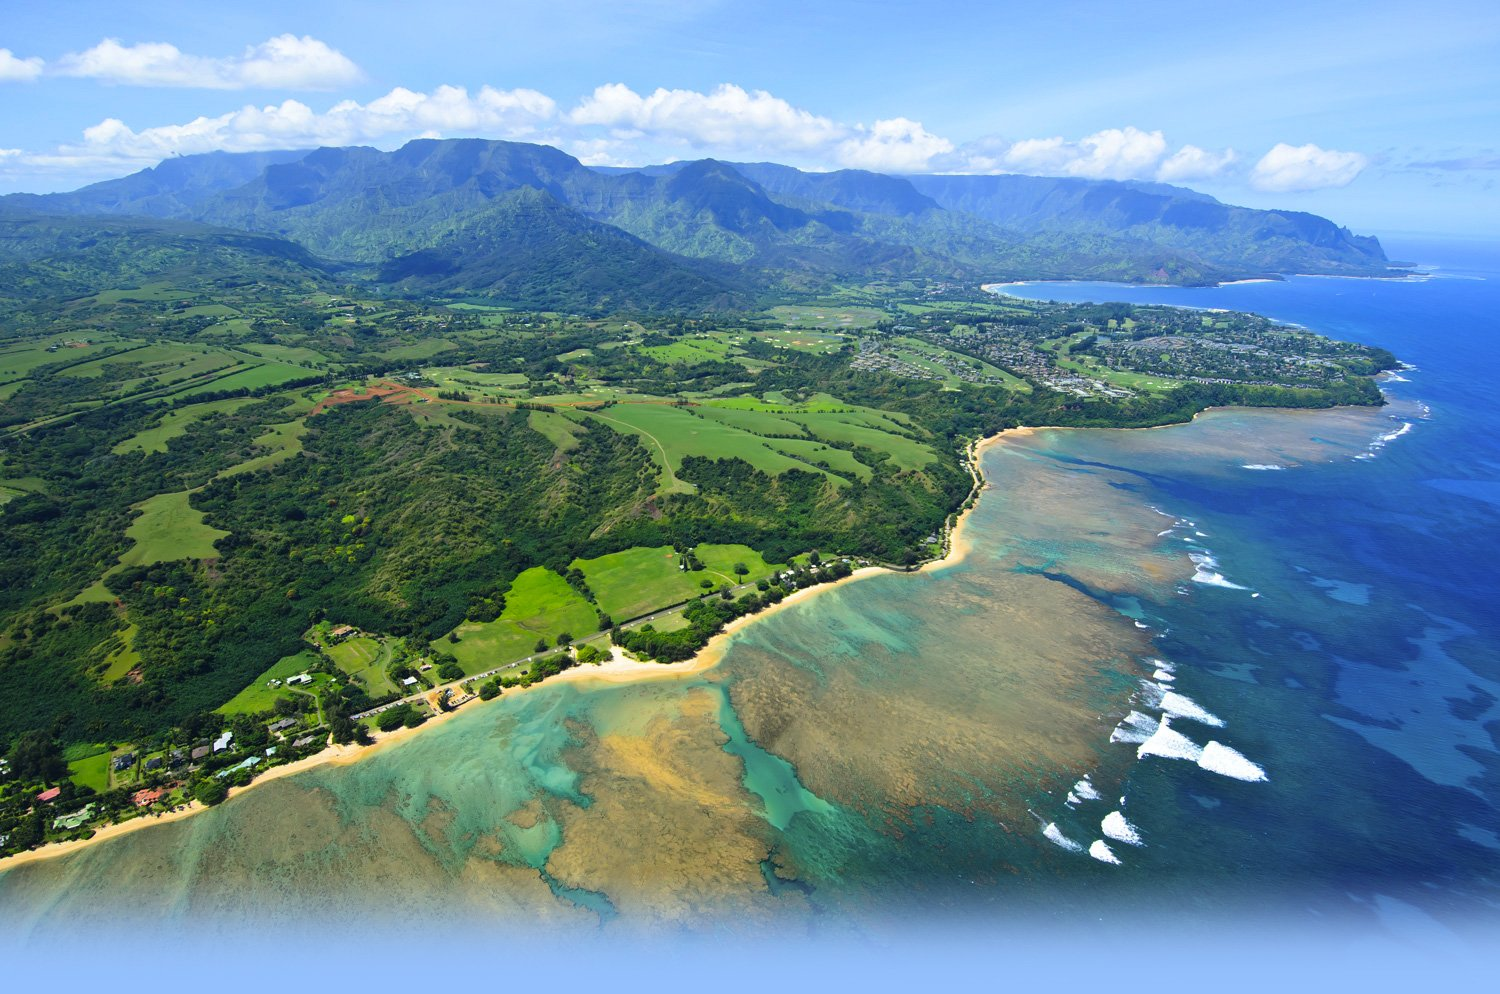 Kauai Careers, Jobs - Princeville at Hanalei Kauai